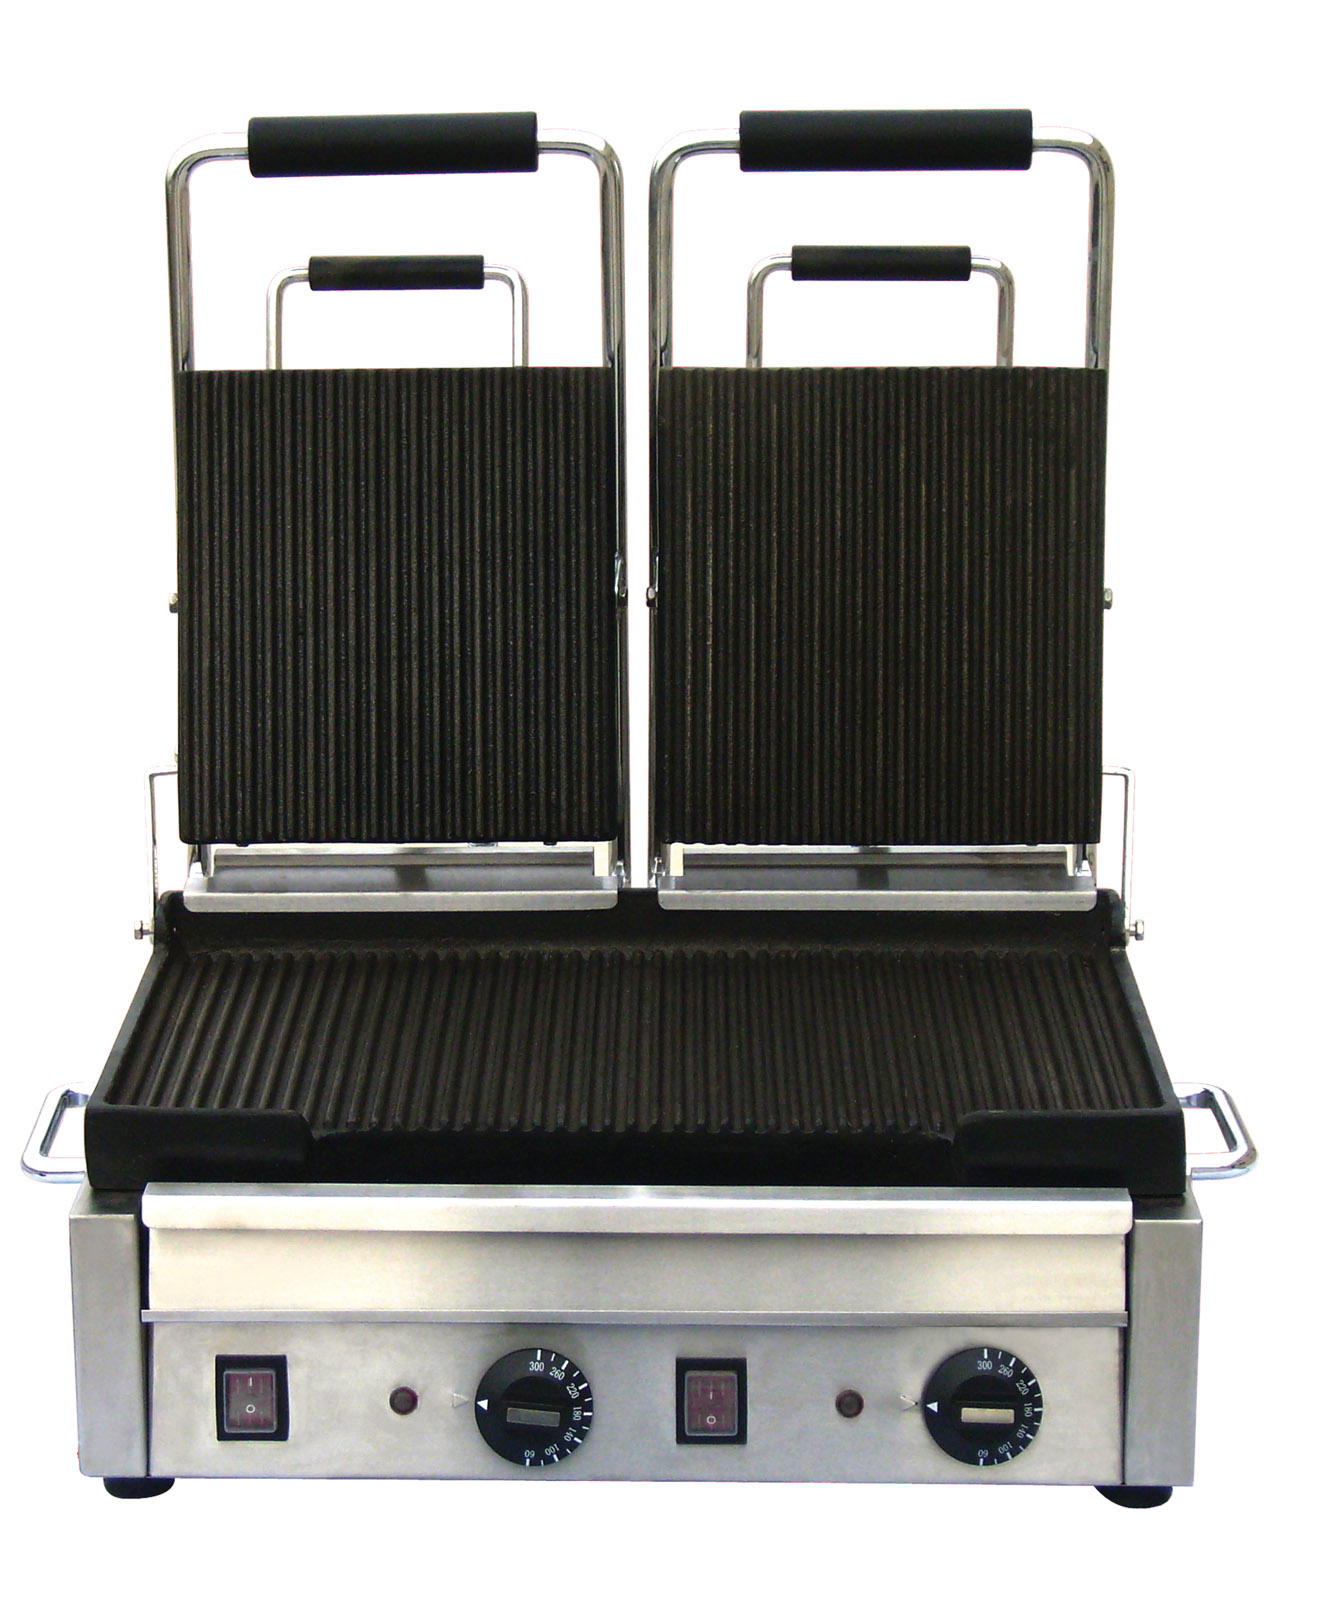 OMCAN Stainless 18in Double Commercial Panini Grill (ribbed top and bottom)